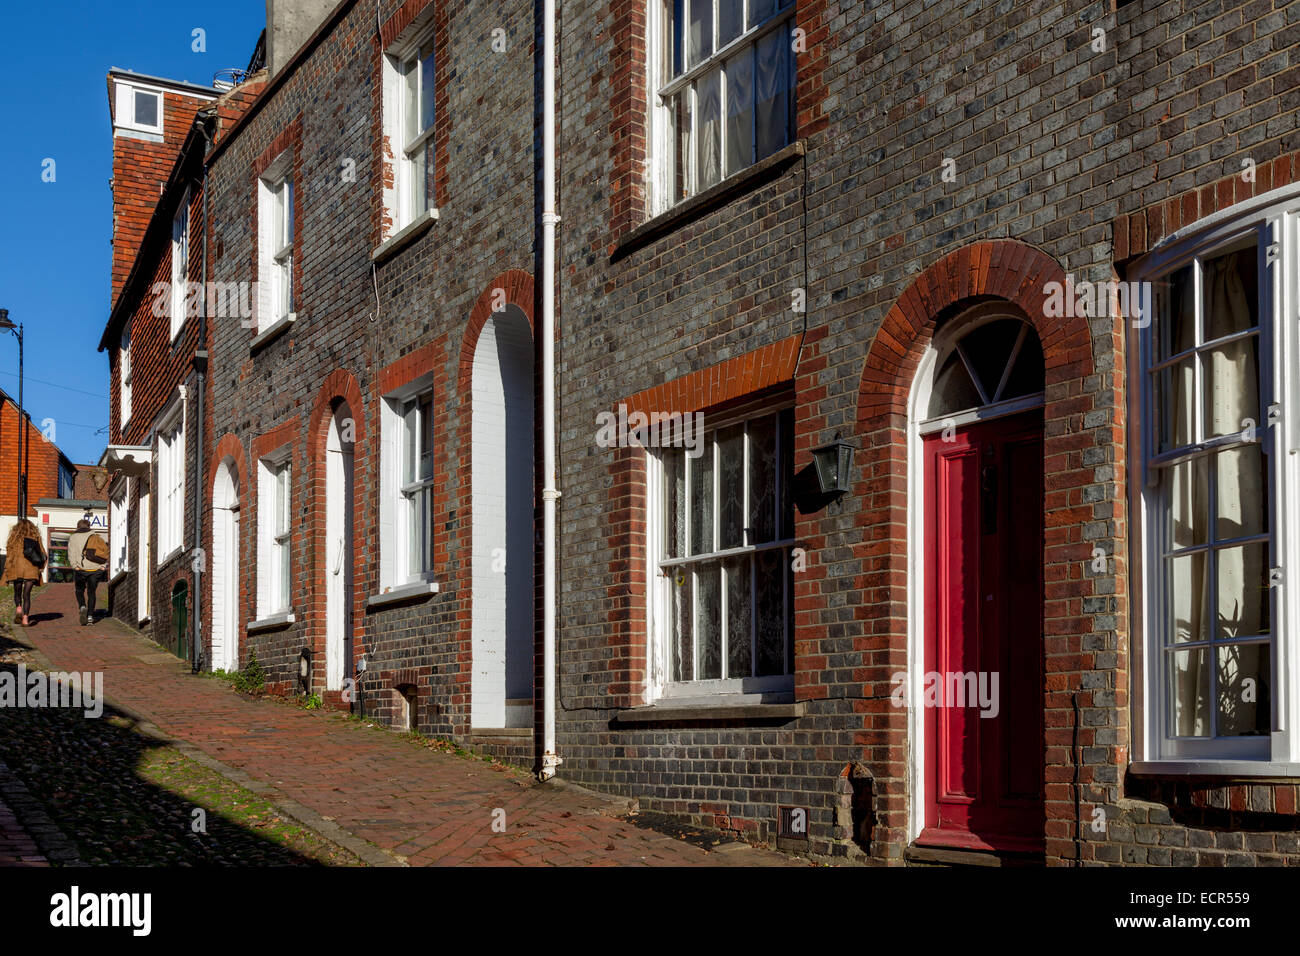 A View Looking Up Historic Keere Street, Lewes, Sussex, England Stock Photo